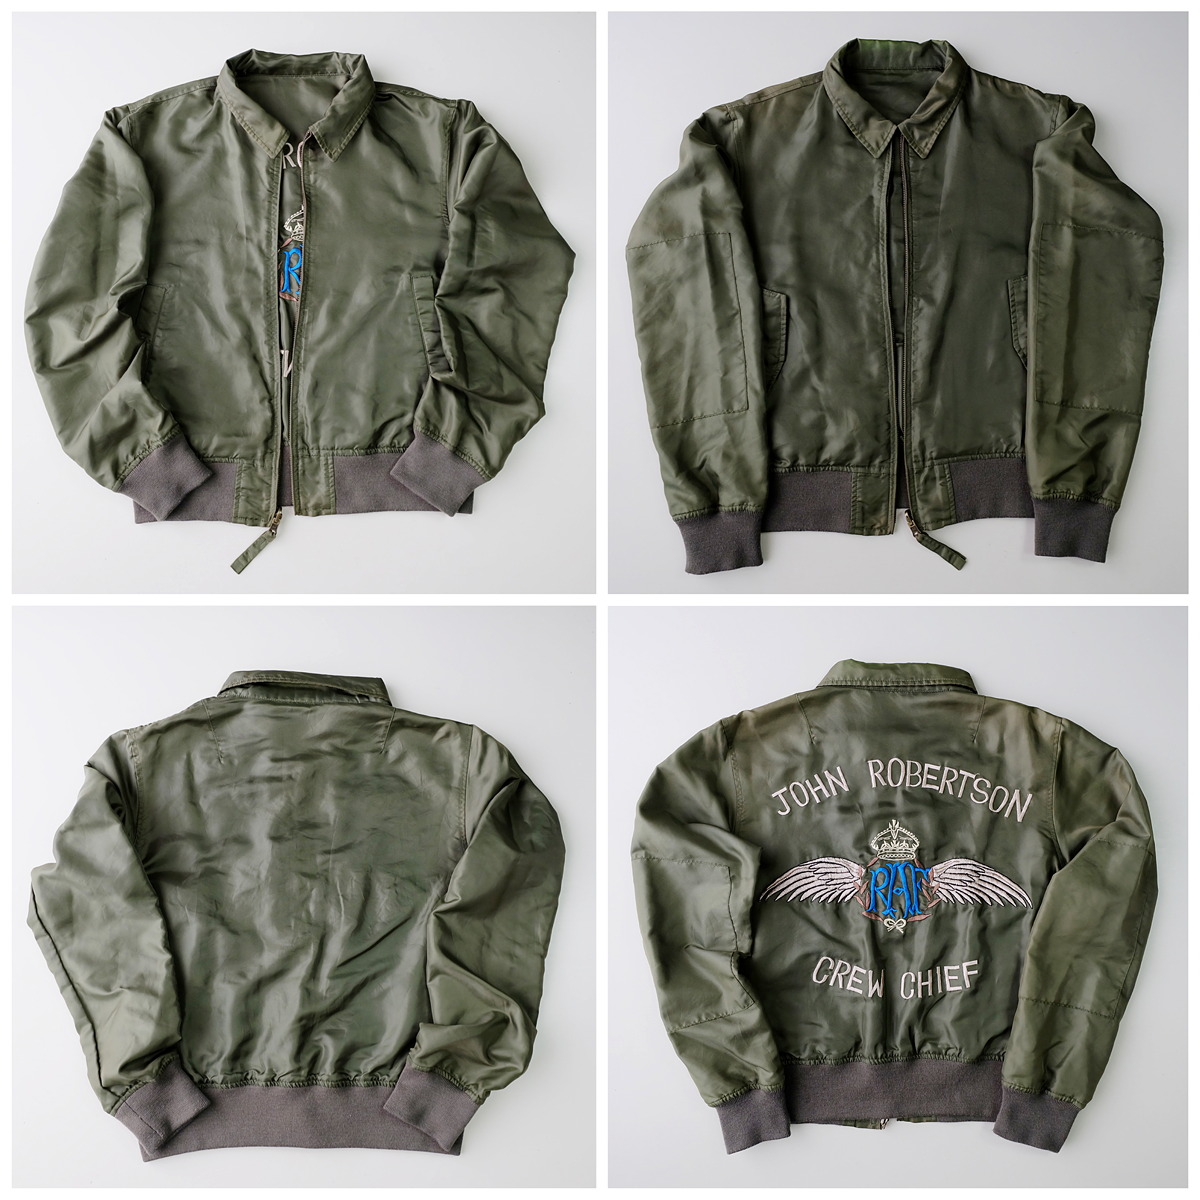 Vintage Japanese Army John Robertson Crew Chief Military Bomber Embroidered Embroidery Sukajan Souvenir Jacket Souvenir Jacket Jackets Vintage Japanese [ 1200 x 1200 Pixel ]